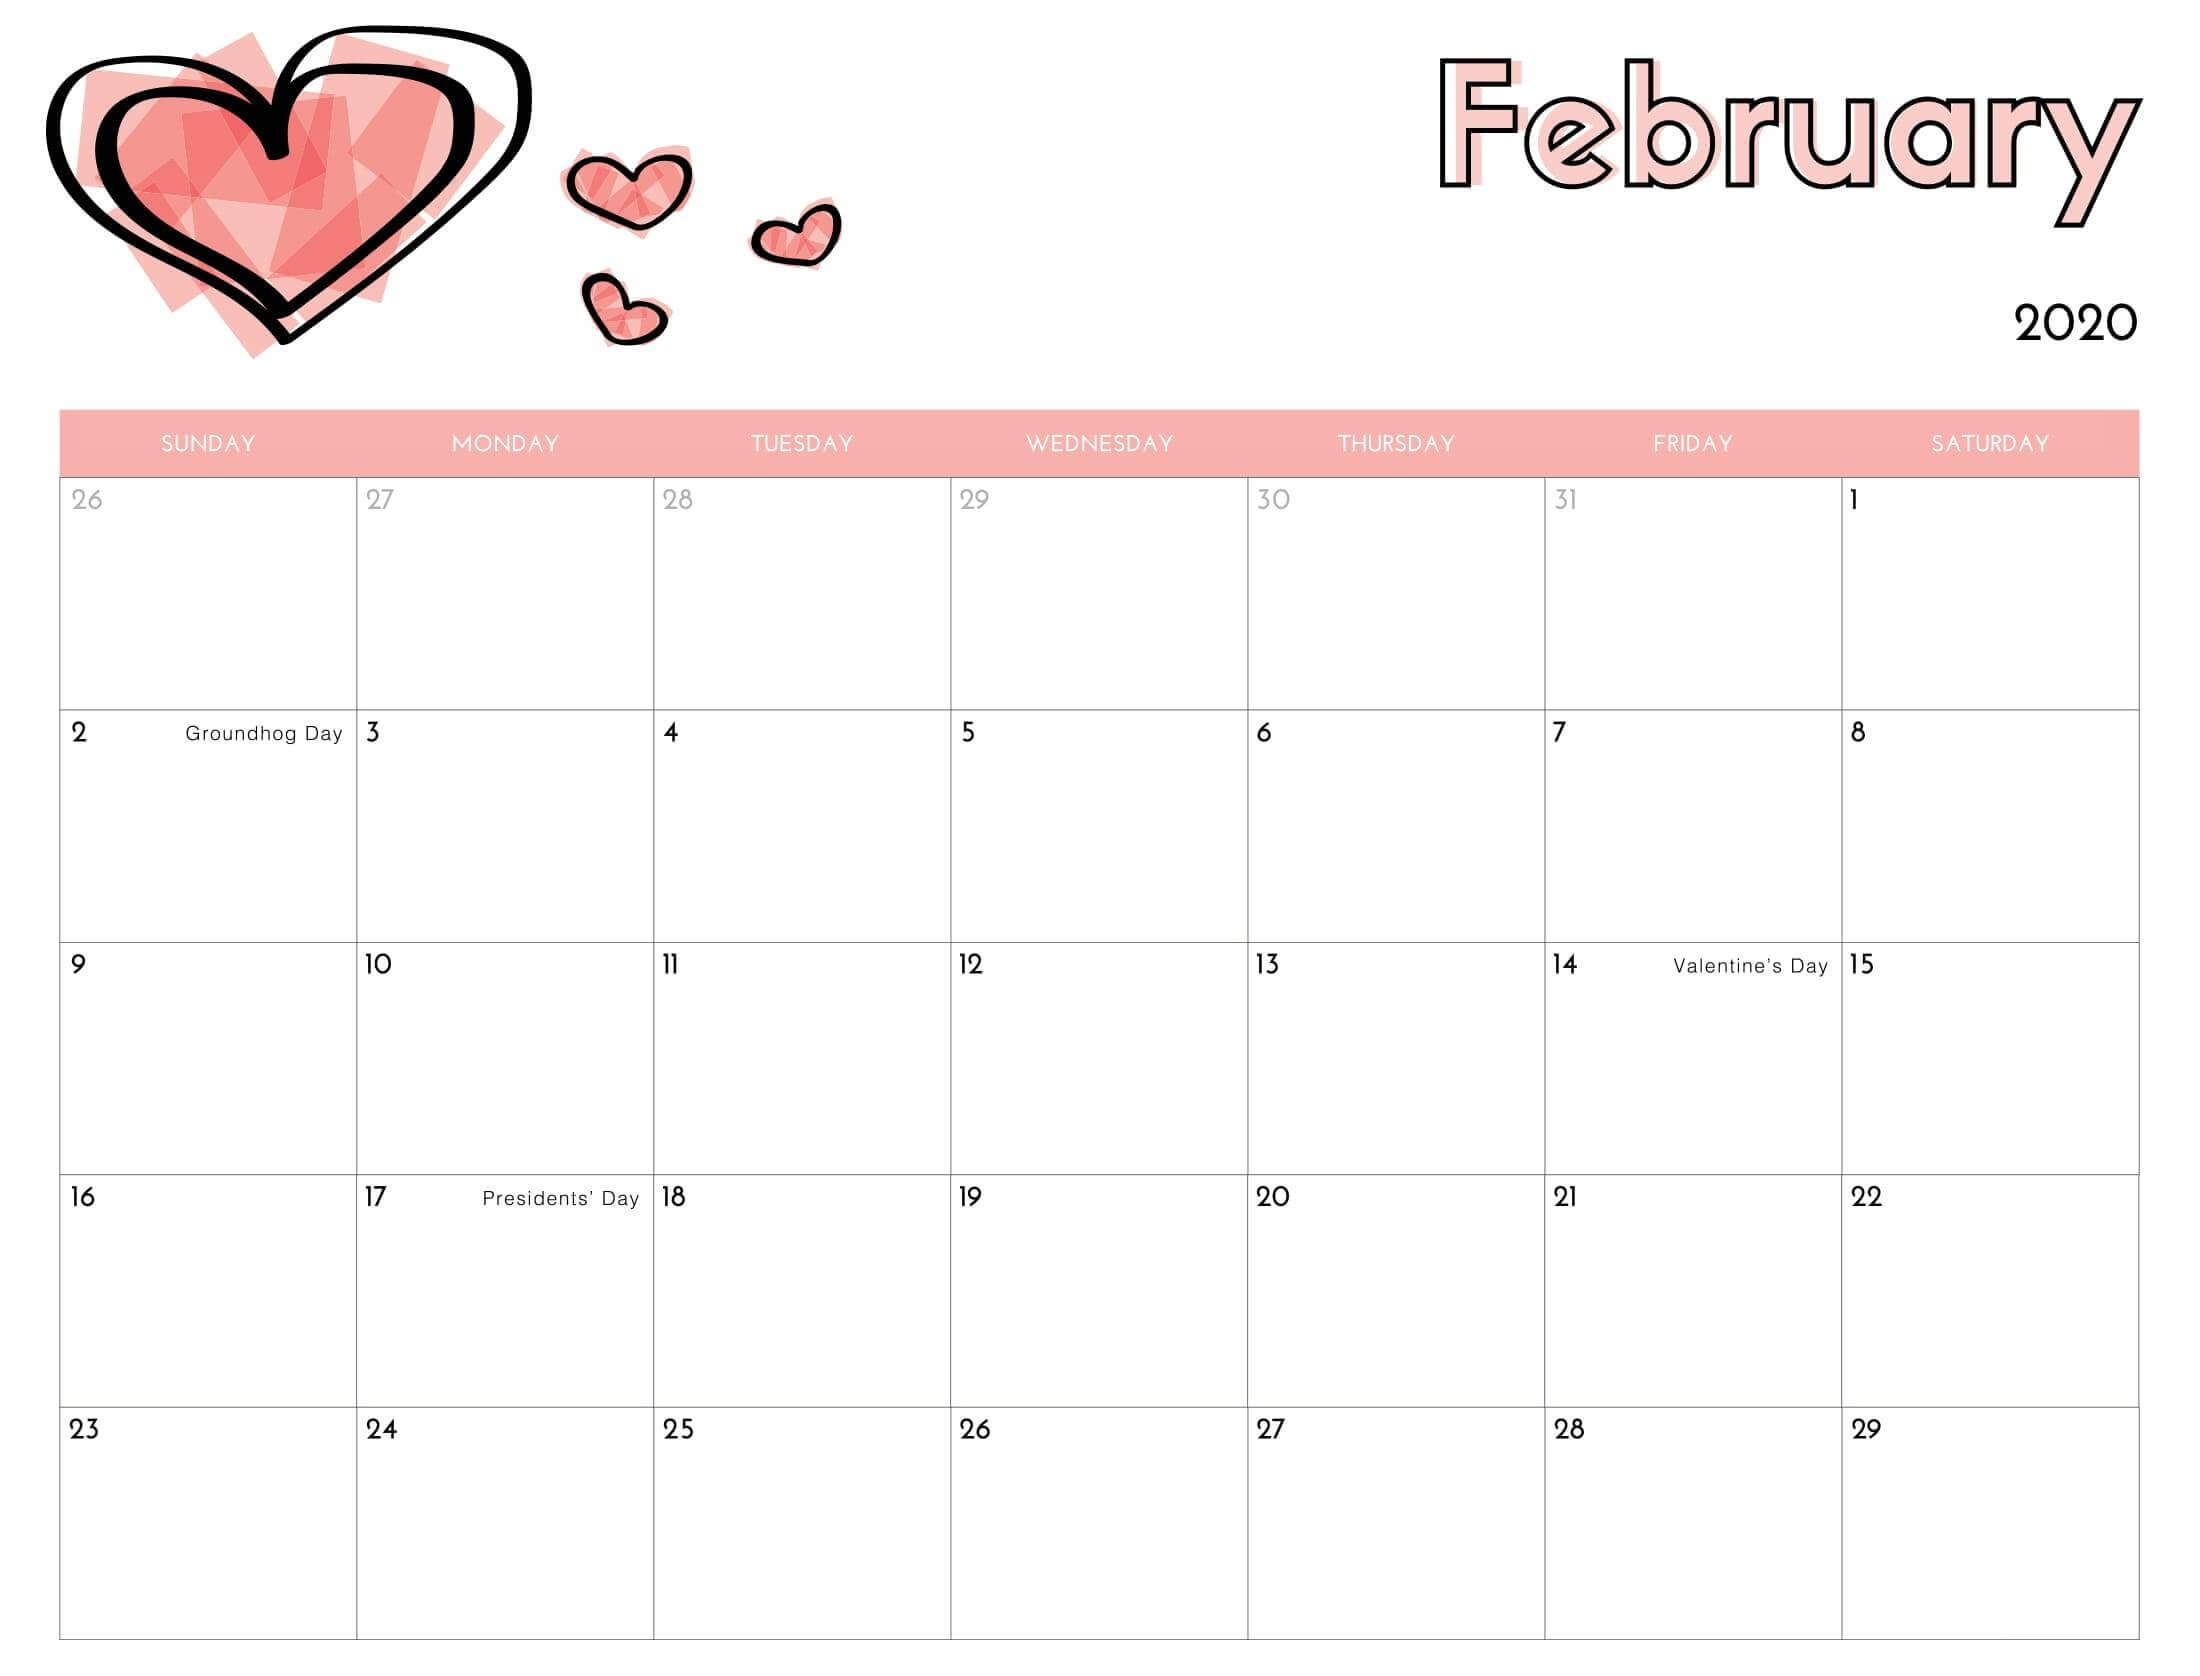 Calendar 2020 Excel  February 2020 Calendar Excel | Monthly pertaining to 2020 Calendar With Holidays Hong Kong Excel